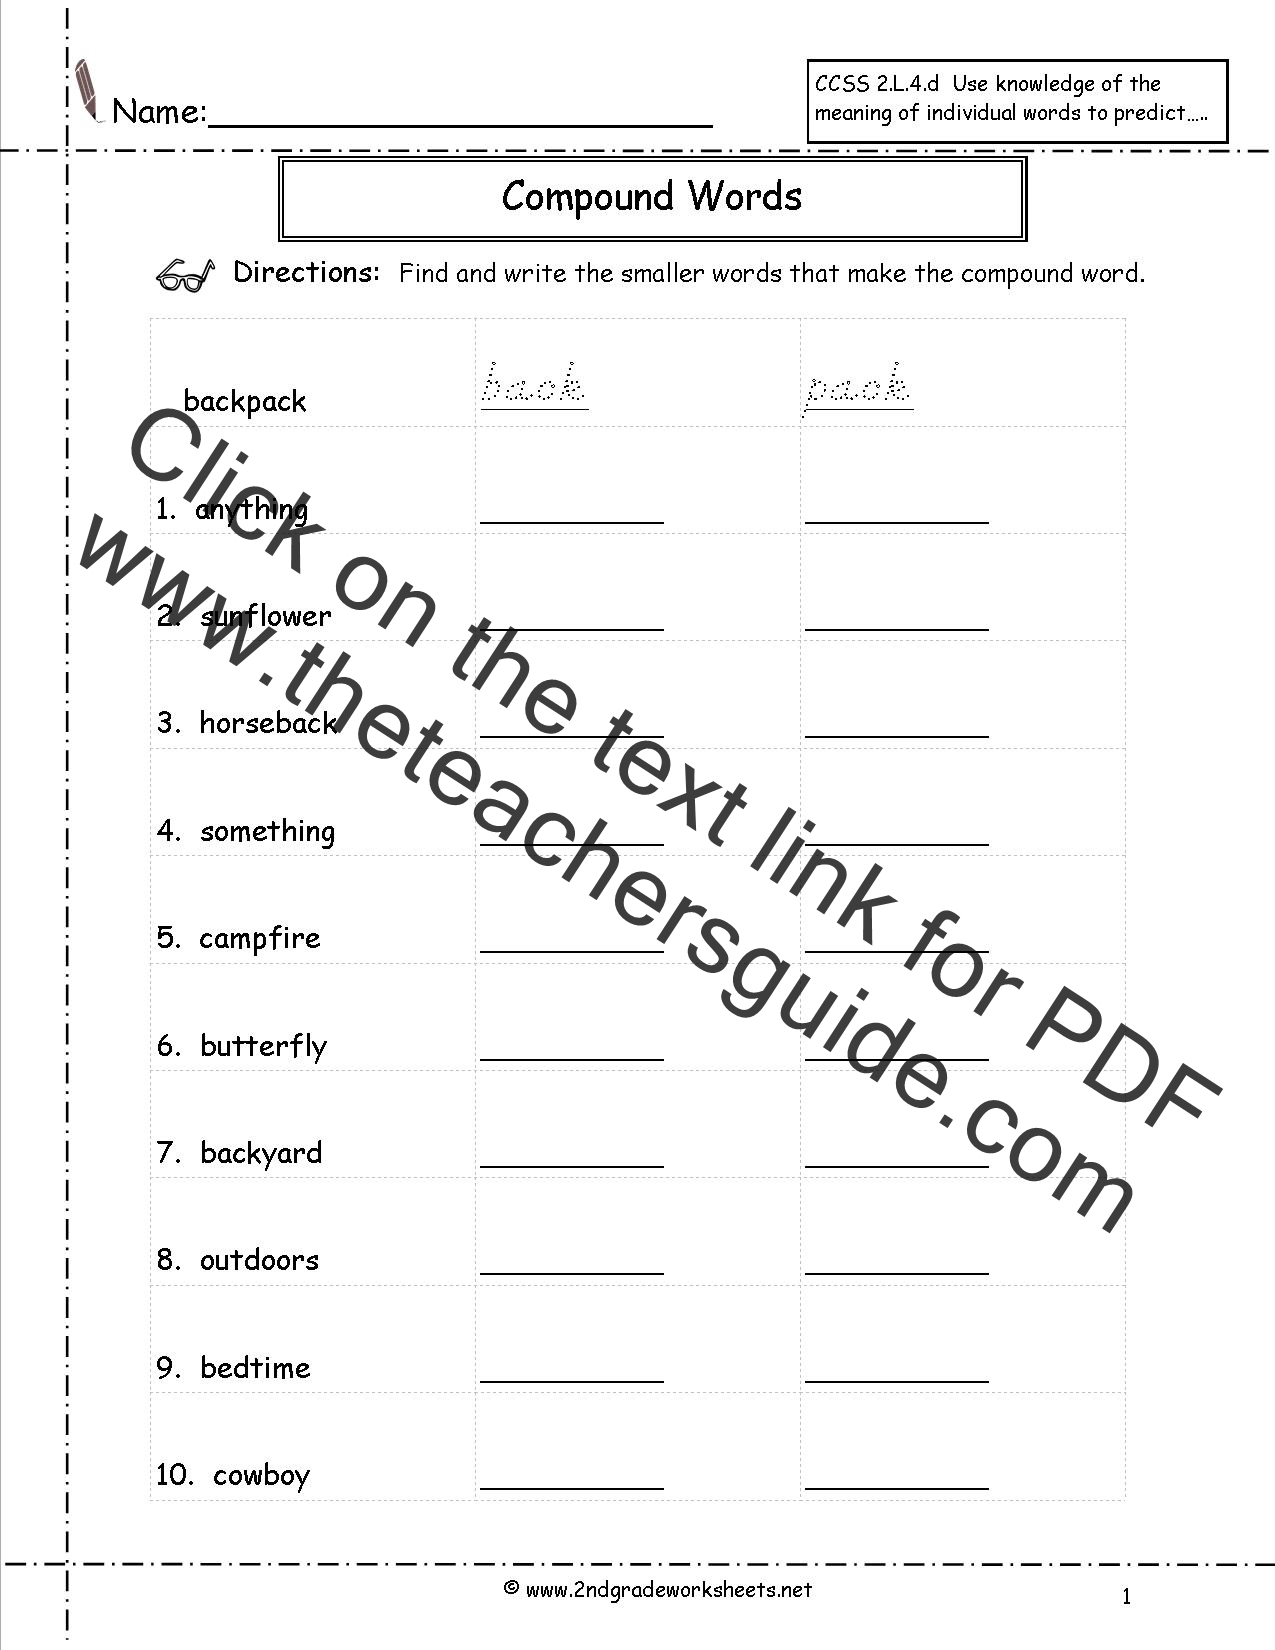 Worksheets Second Grade Grammar Worksheets free languagegrammar worksheets and printouts compound words worksheets